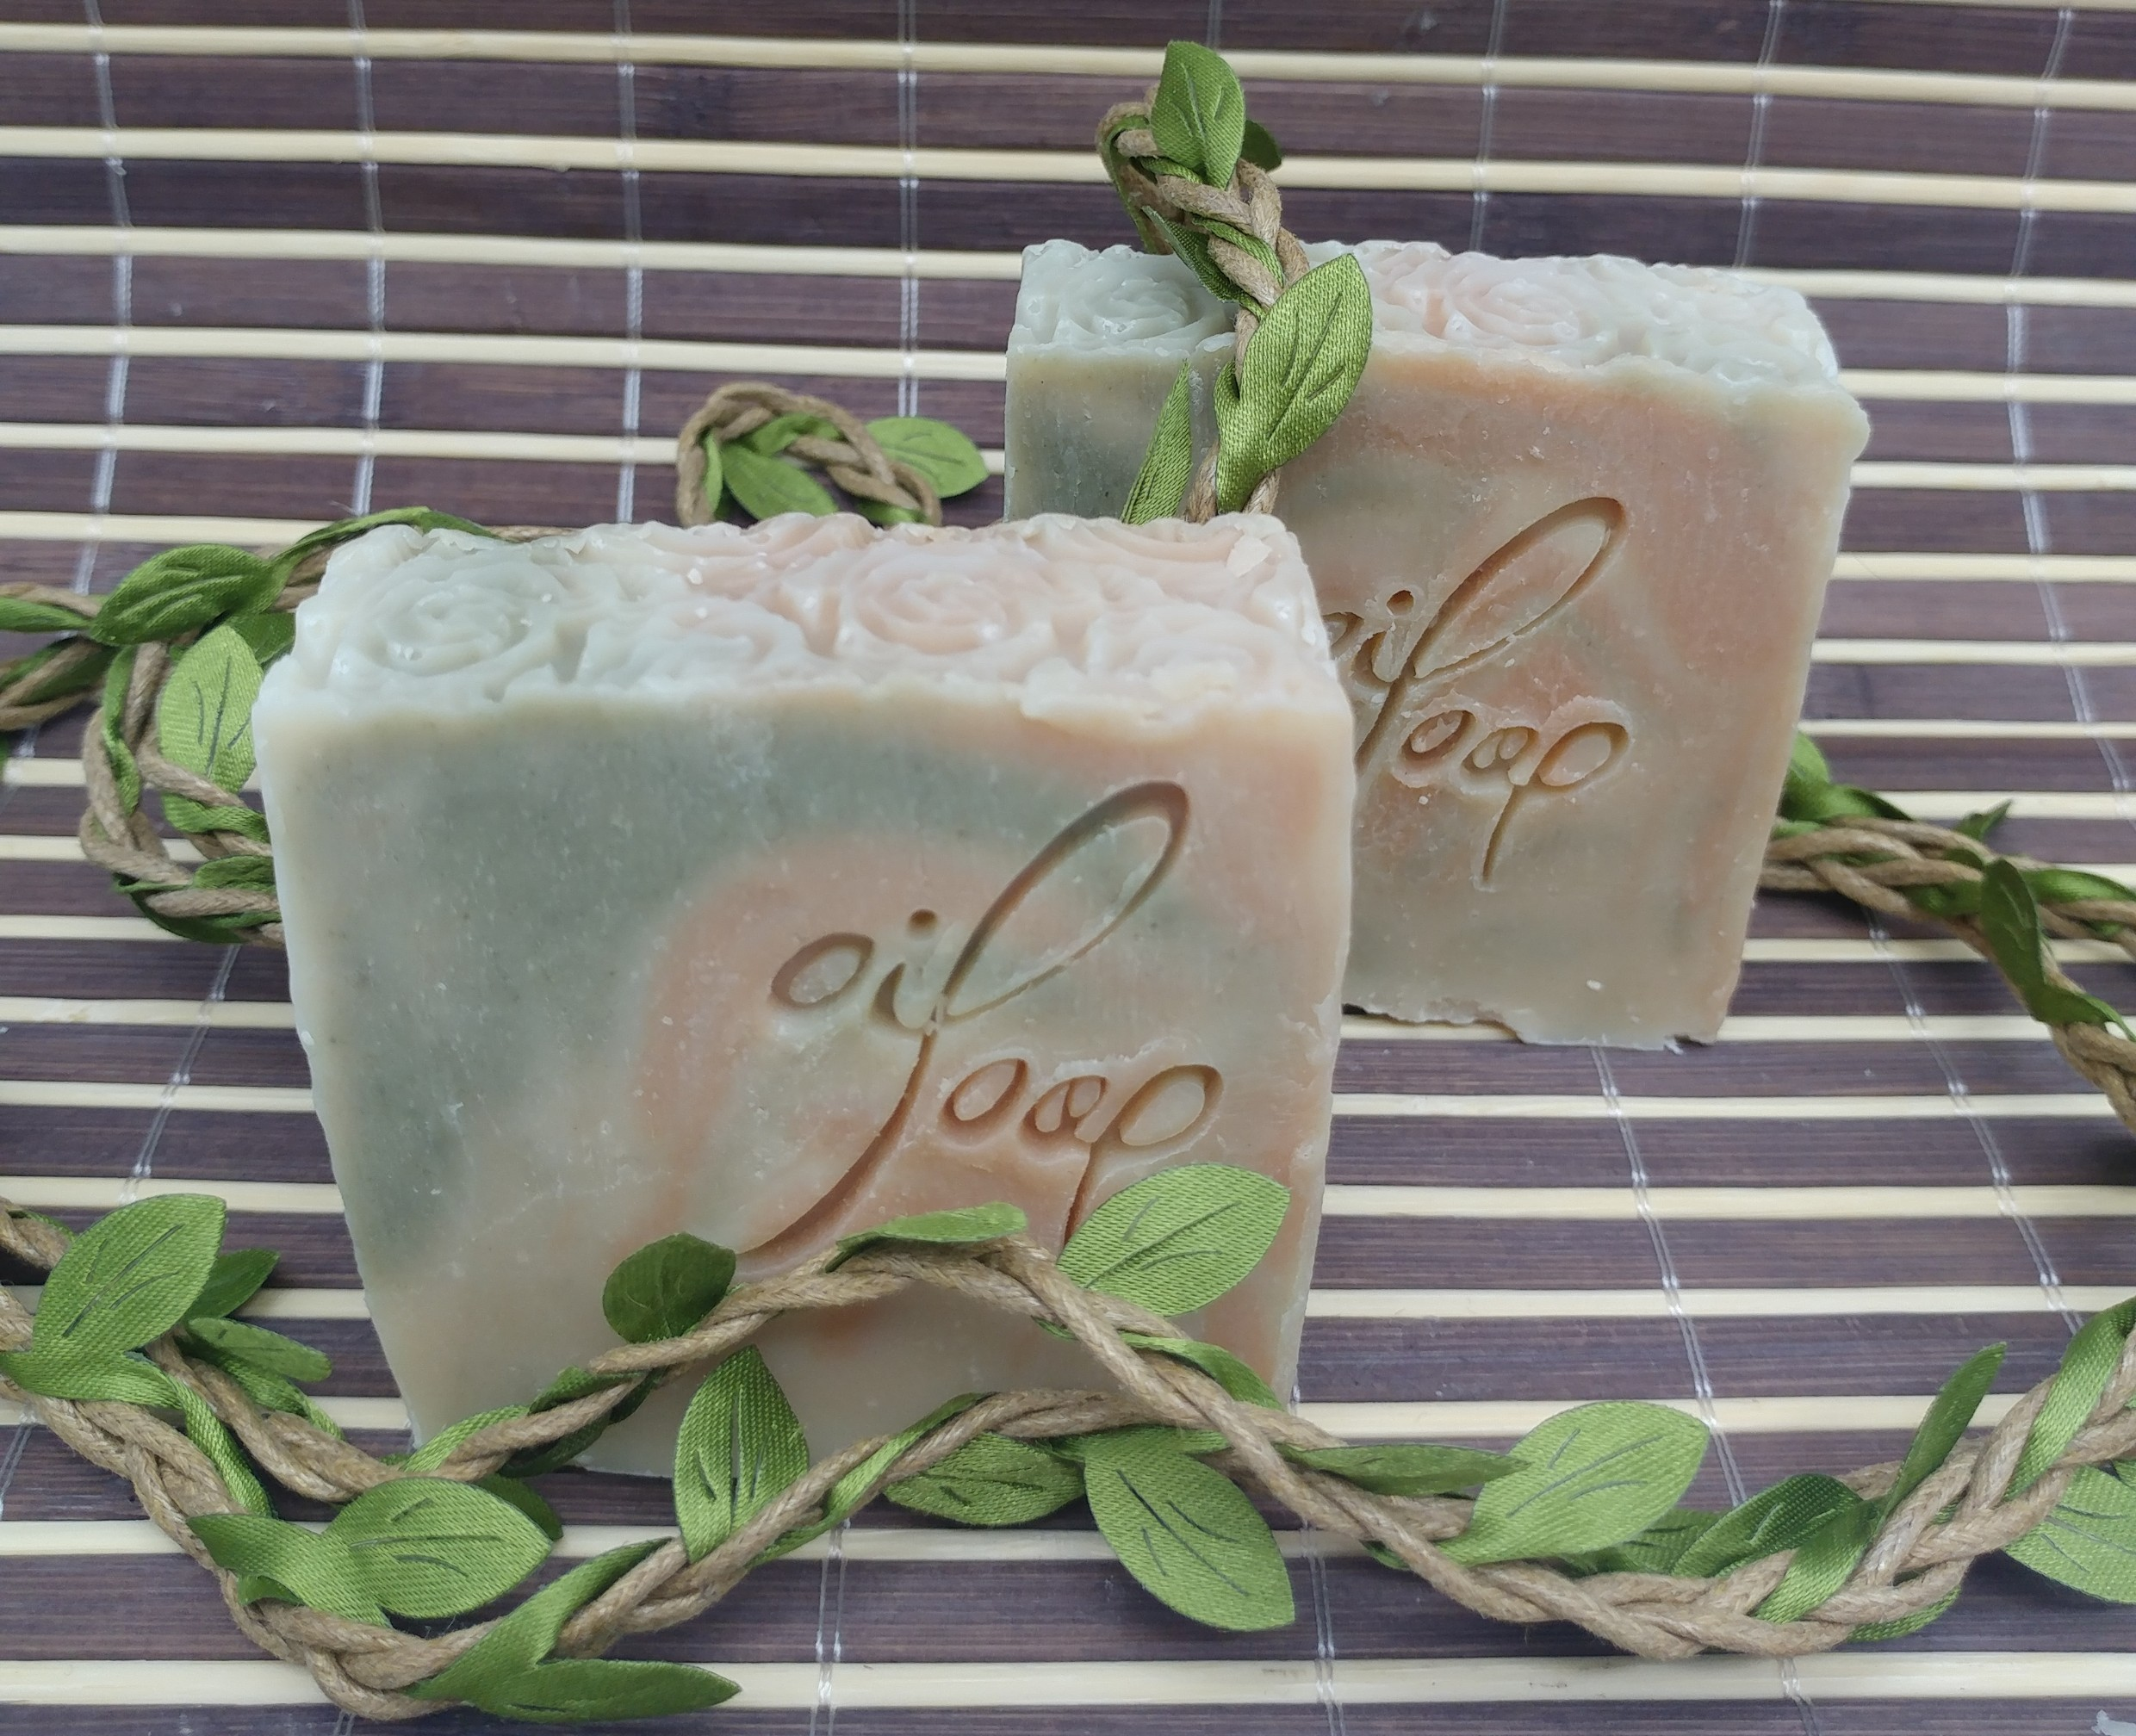 Skincare Revolution Your Skin Will Thank You for this 100% Natural Handmade Soap! - WELLNESS - K11